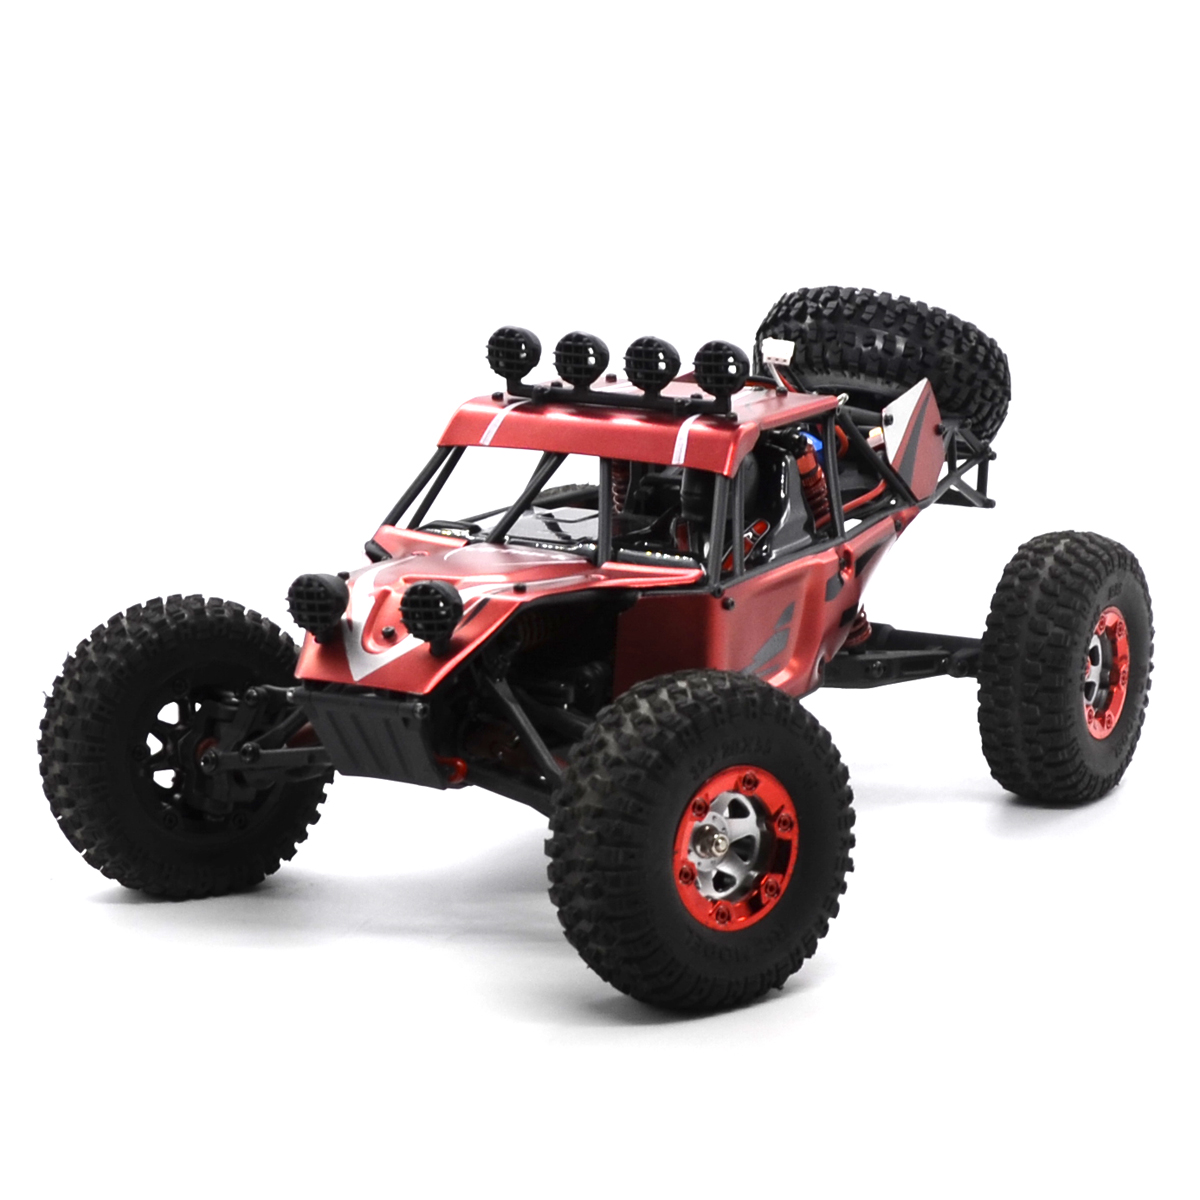 Virhuck V01 4WD Off-Road Vehicle Car RC Racing Car Rock Crawler Truck Toys for Kids Boys